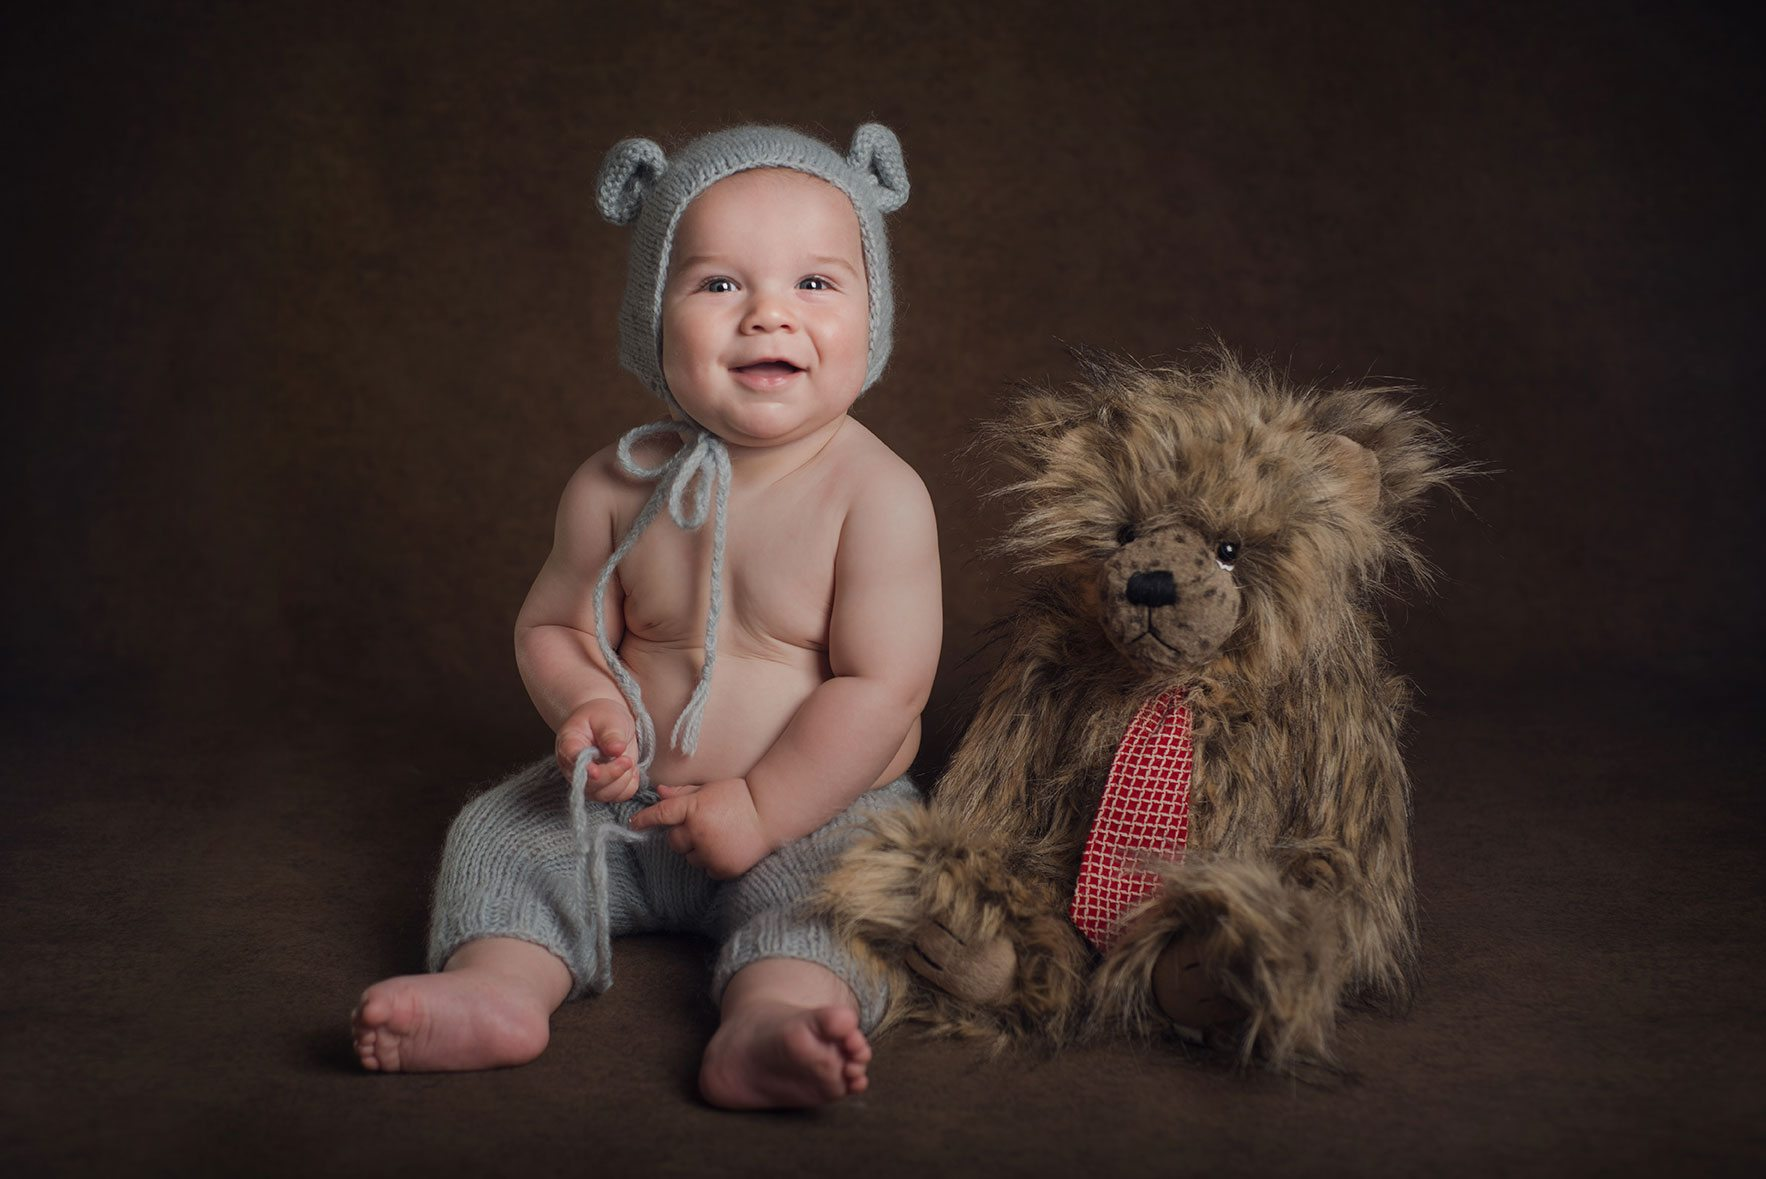 Baby boy studio photograph sitting with a bear wearing a bear hat.